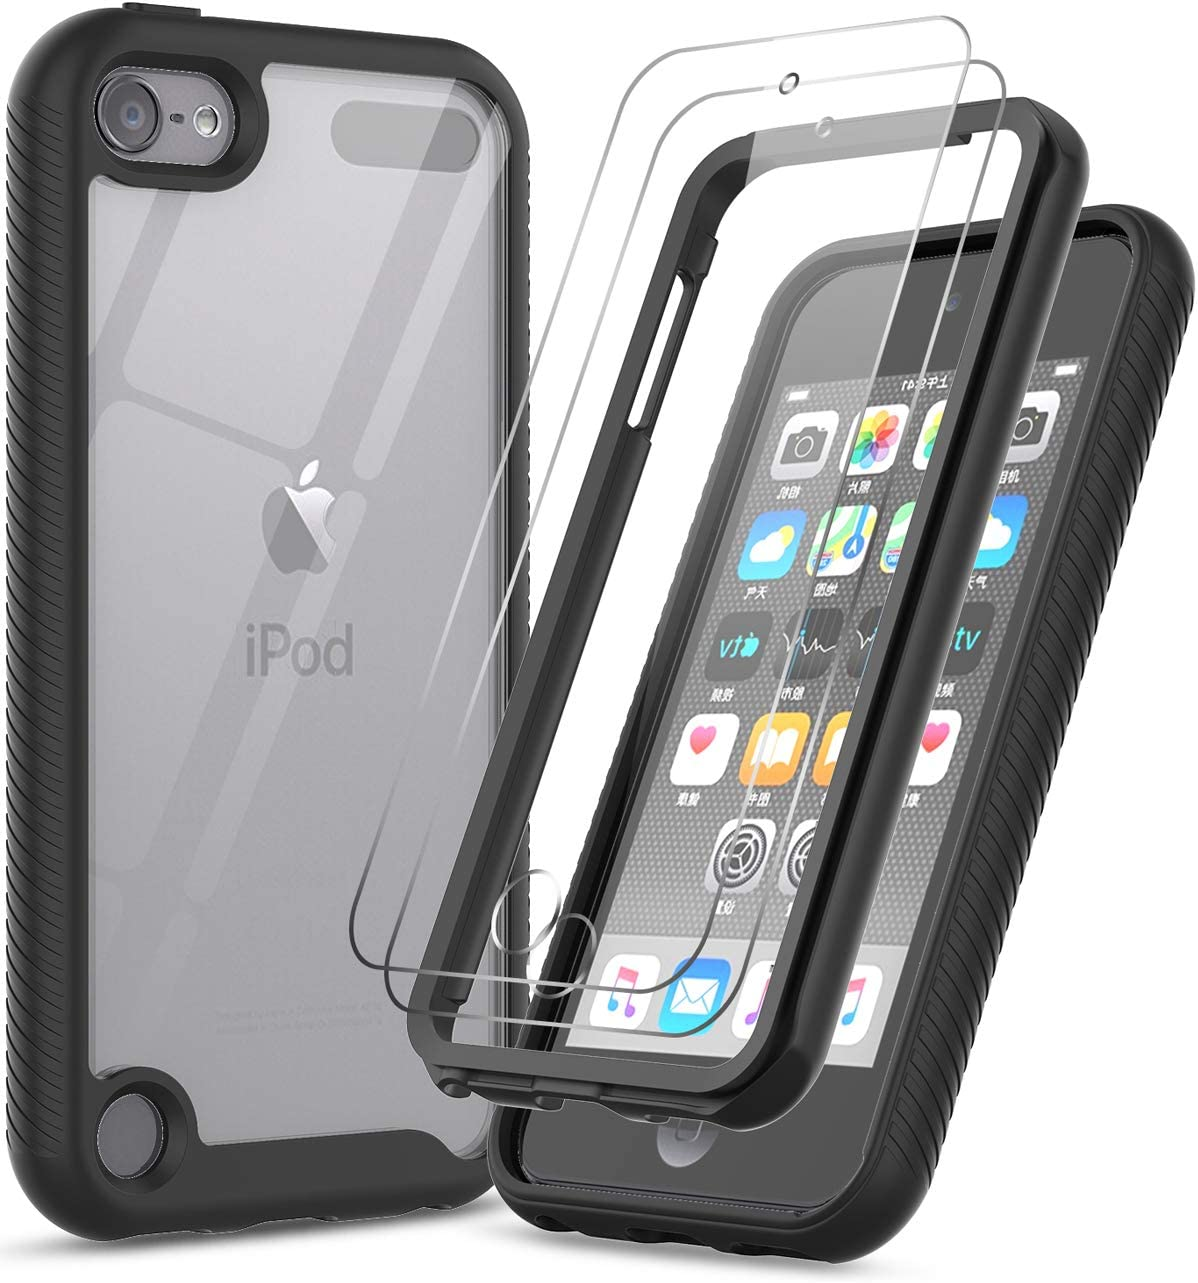 iPod Touch 7 Case, iPod Touch 6 Case with Tempered Glass Screen Protector [2 Pack], LeYi Full-Body Protective Hybrid Rugged Shockproof Bumper Clear Case for Apple iPod Touch 7th / 6th / 5th Gen, Black